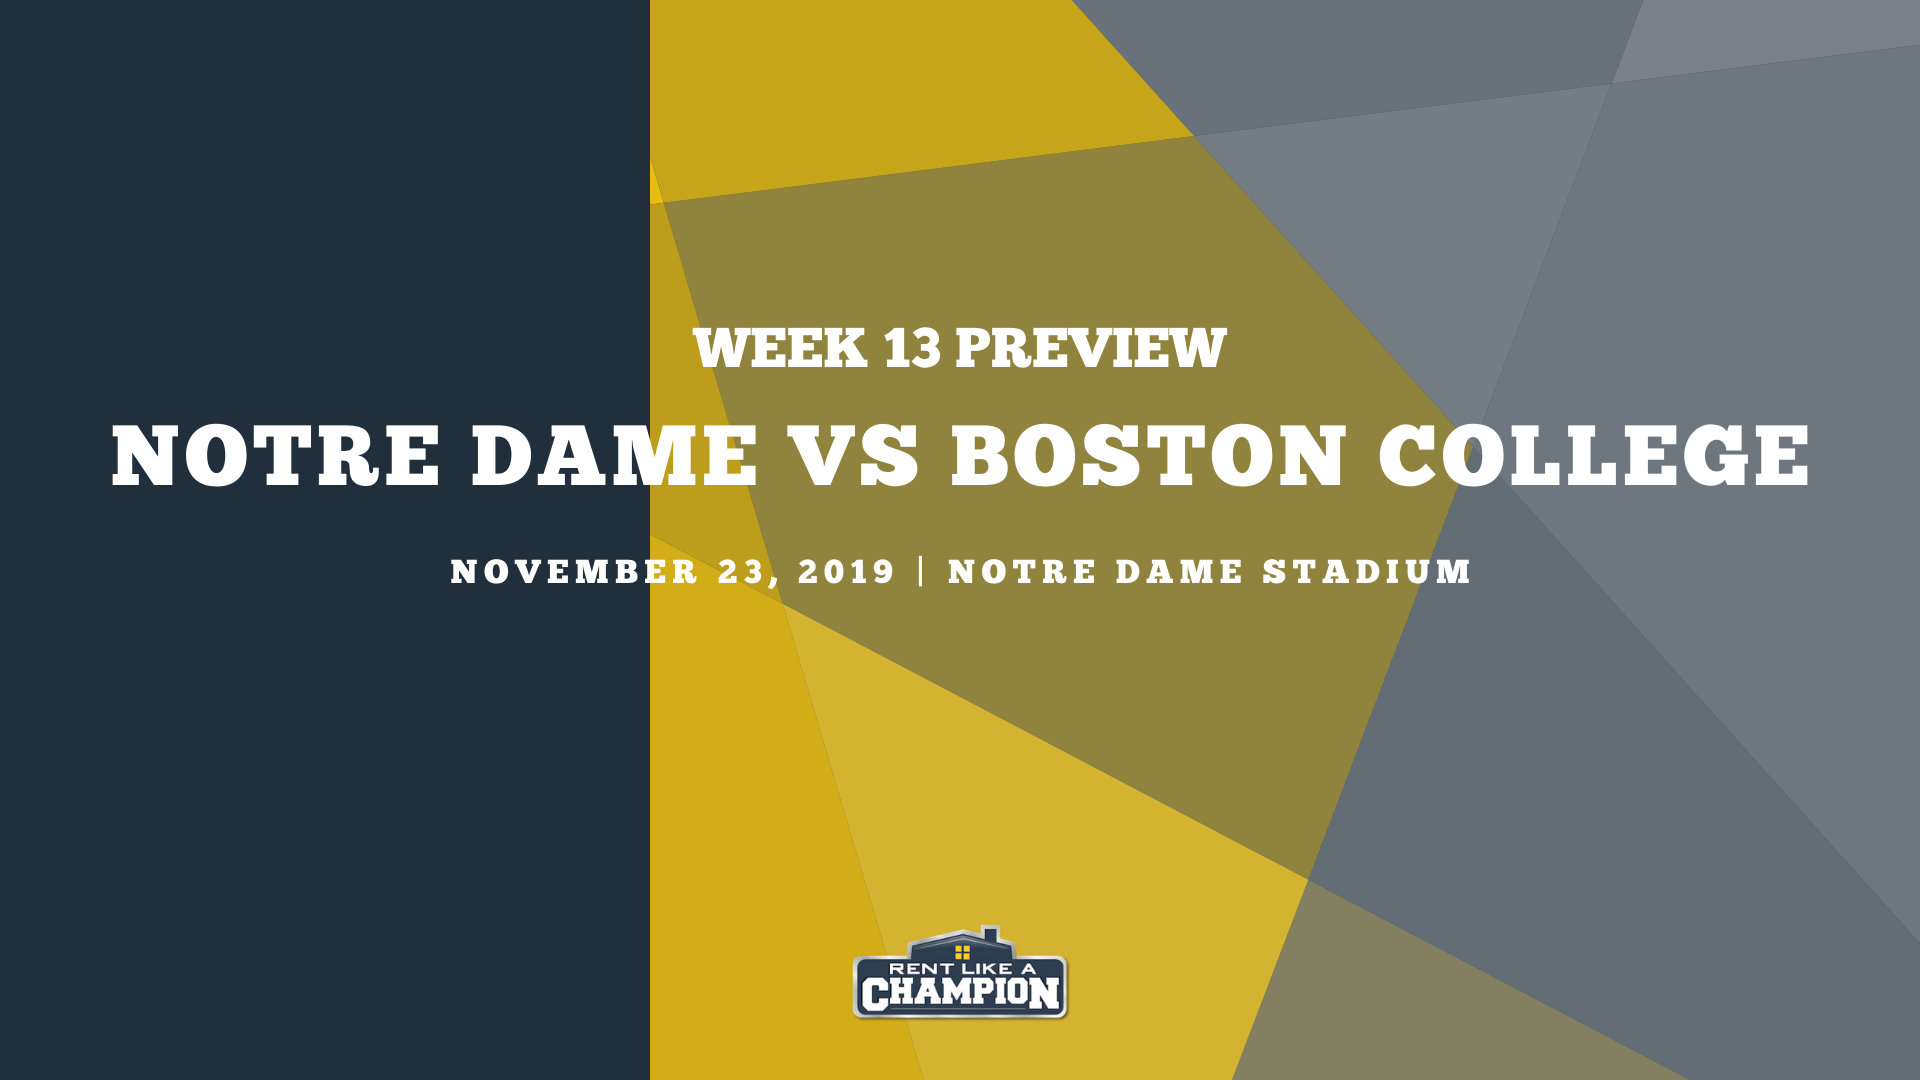 Notre Dame Game Preview Template (10)